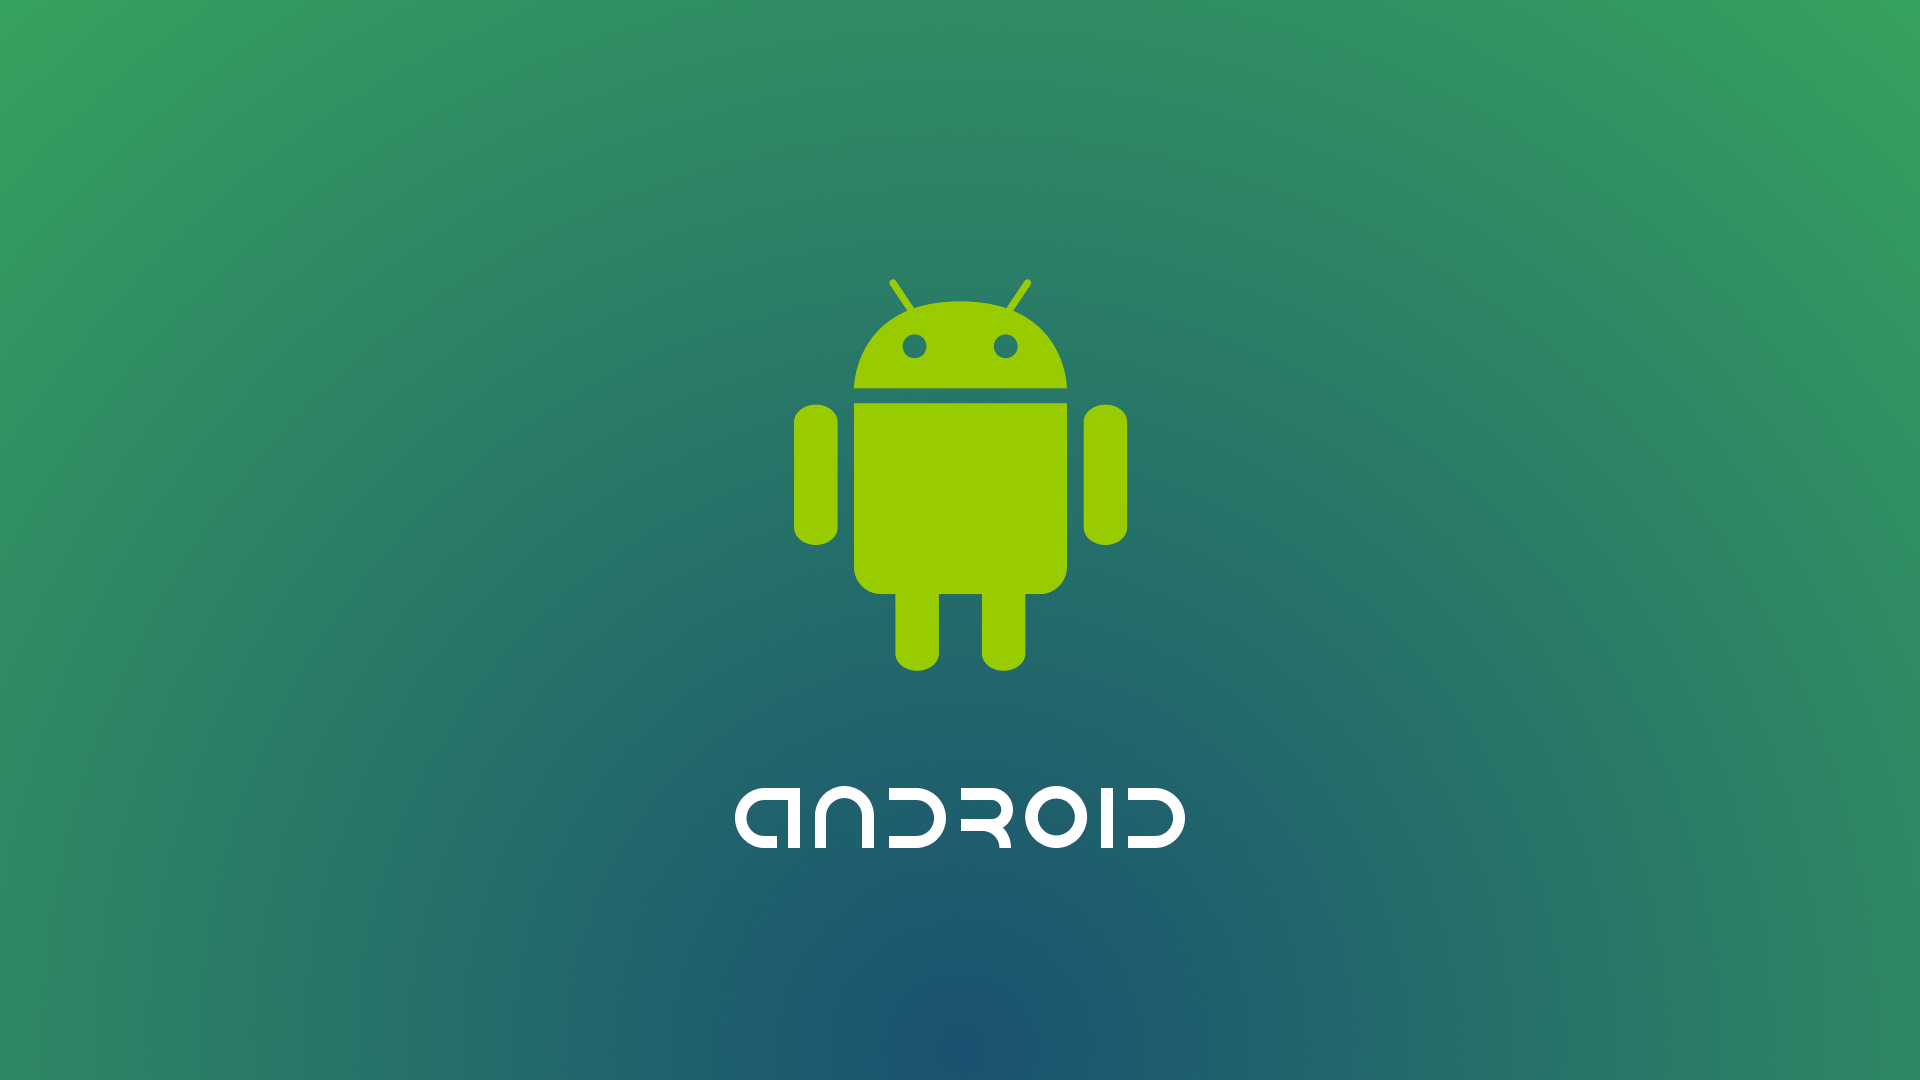 Aplikasi Android Download Aplikasi Android Gratis  Auto Design Tech